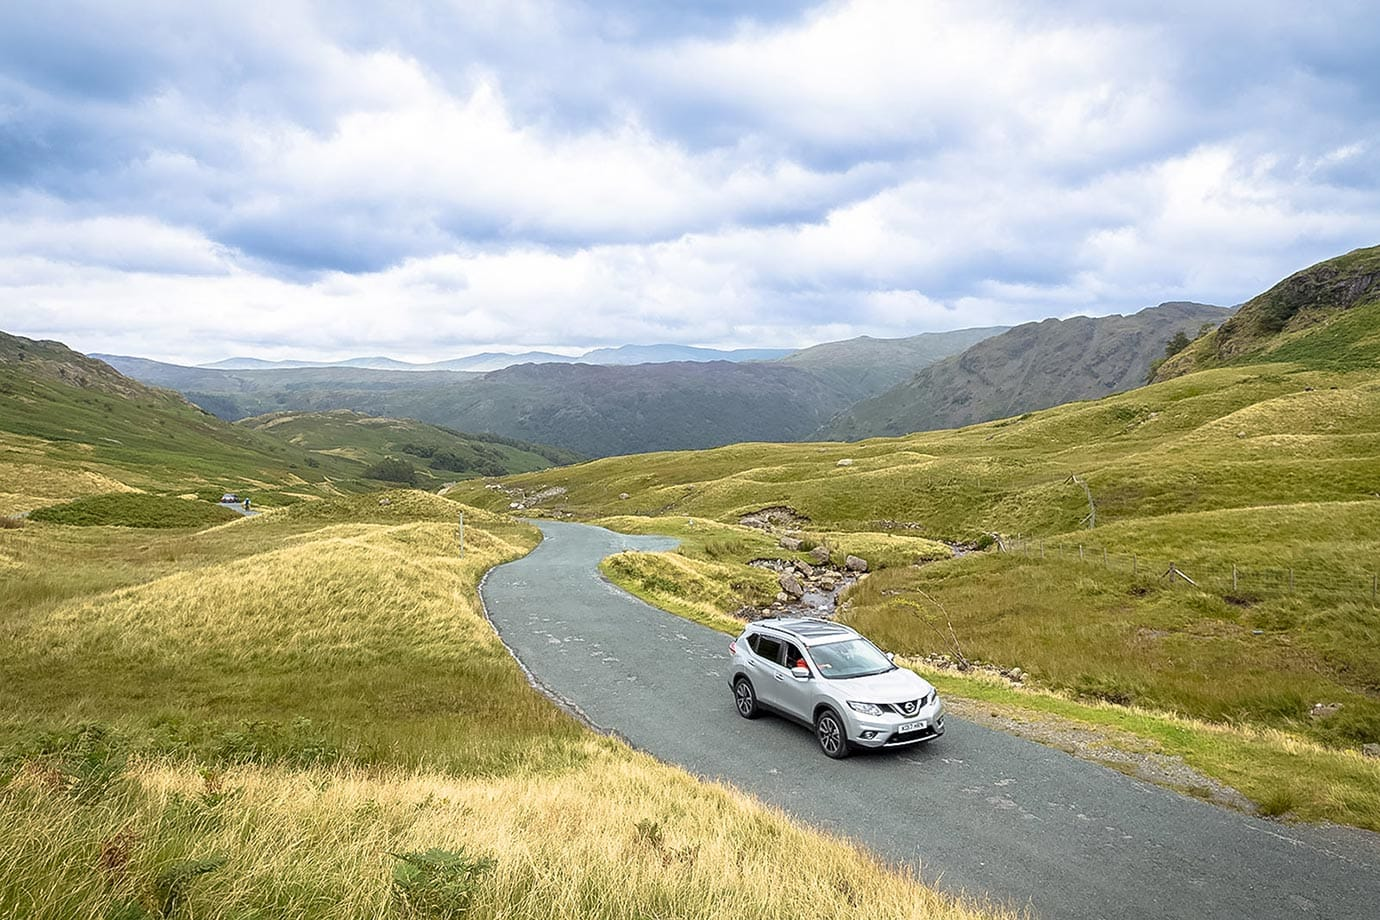 Driving in the Lake District